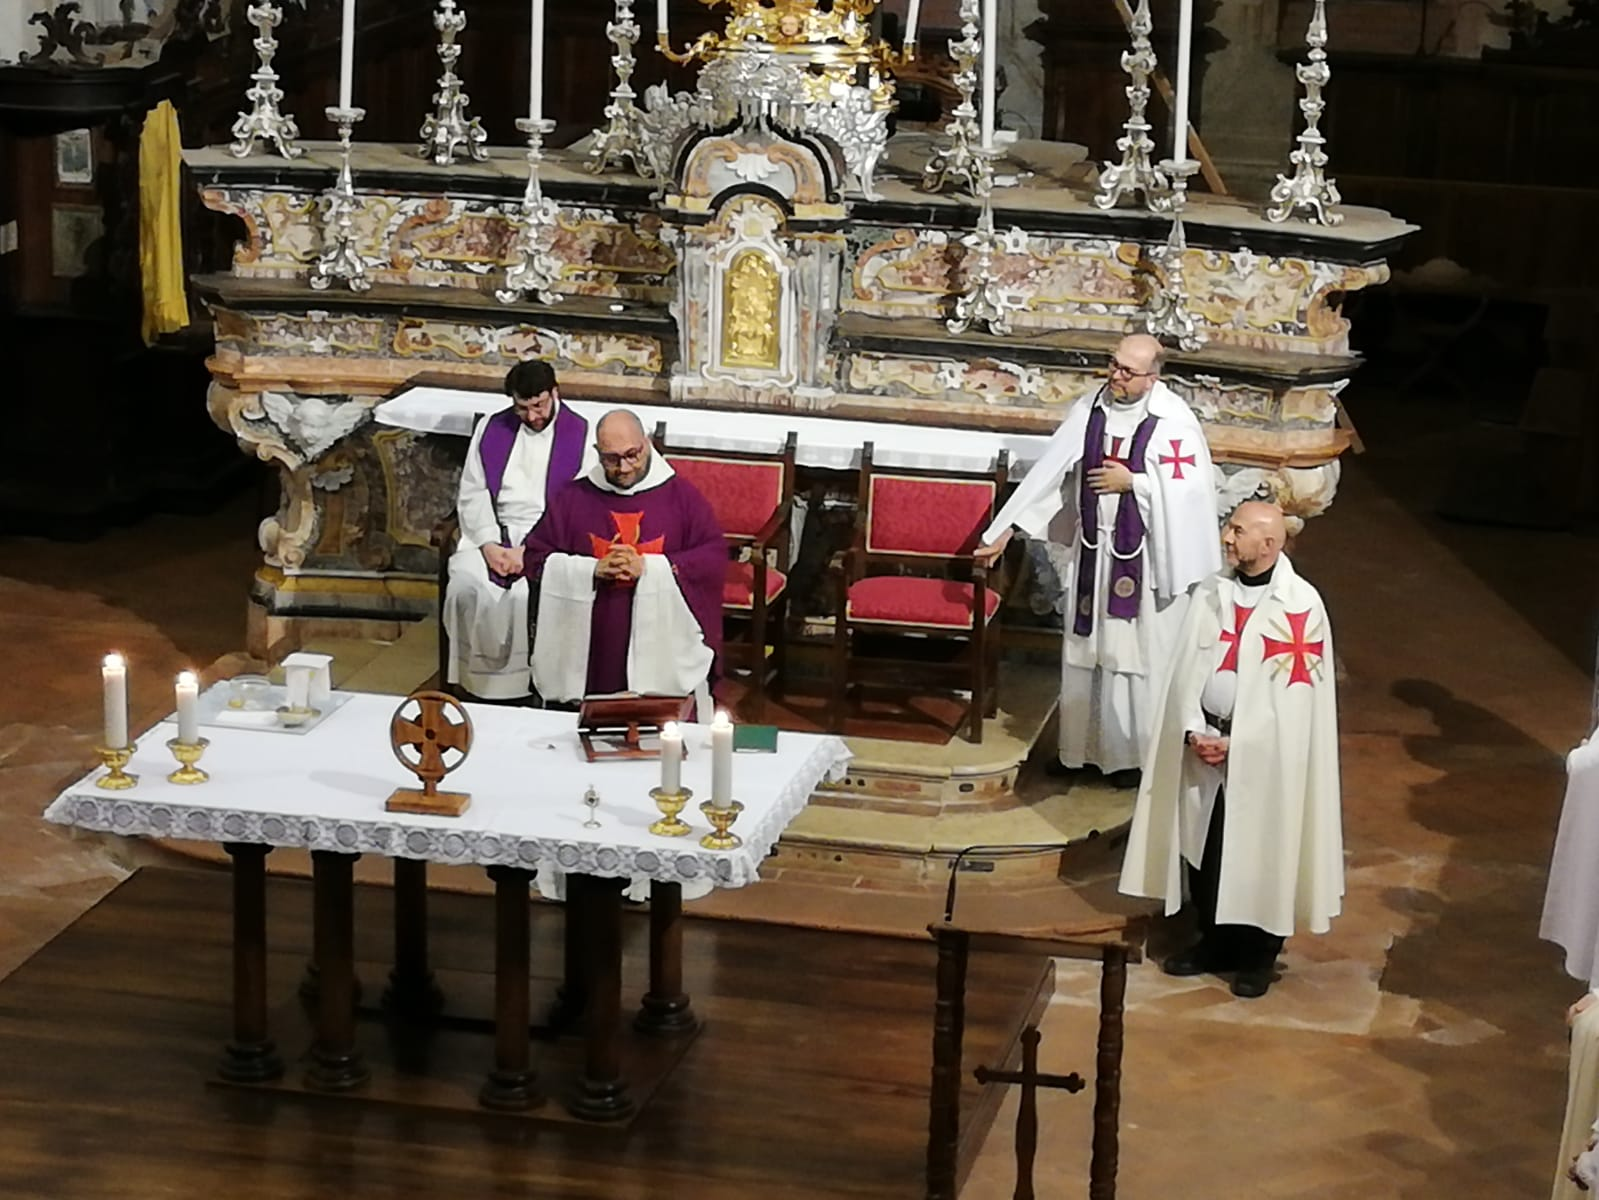 Night prayer in Chiaravalle della Colomba March 2019